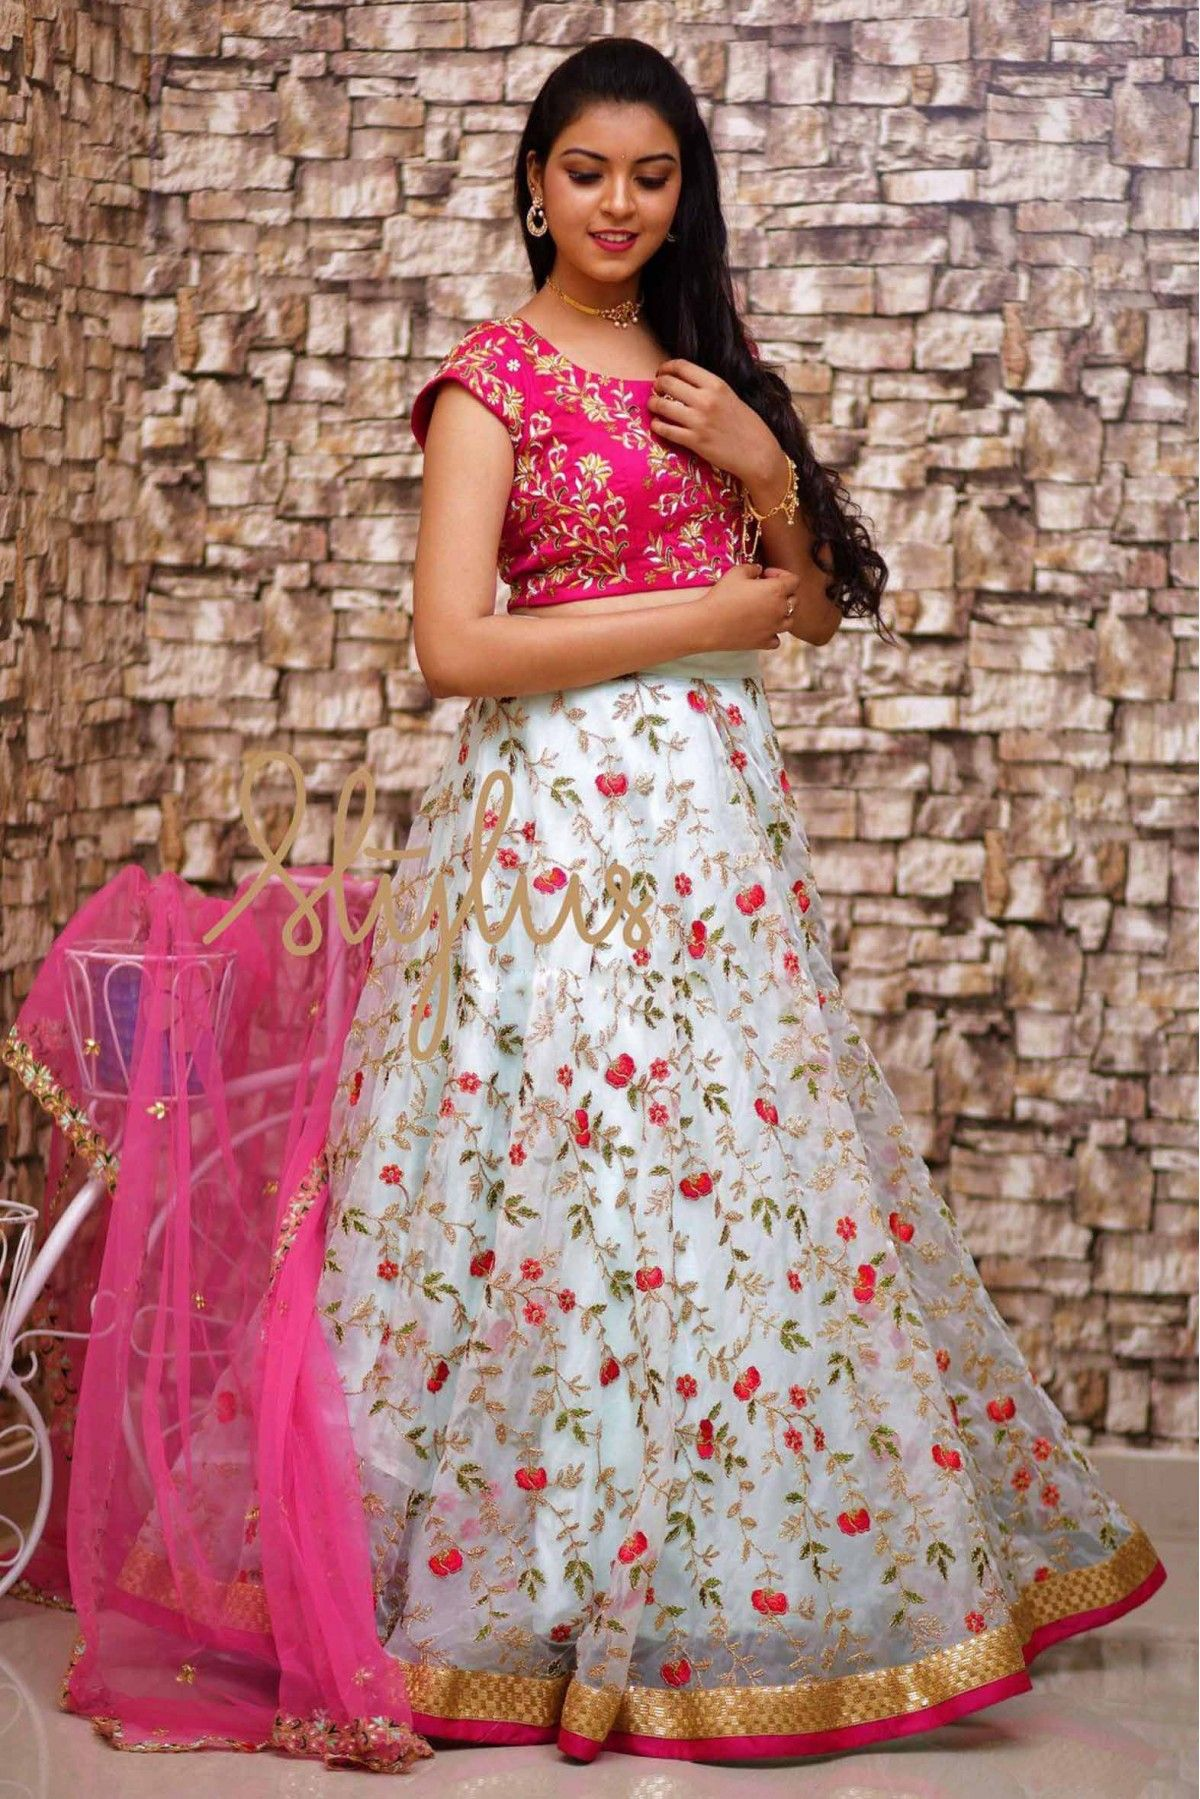 d4b8449a5a Off White Colour Organza Silk Fabric Lehenga Choli Comes with matching  blouse. This Lehenga Choli Is crafted with Thread Work This Lehenga Choli  Comes with ...